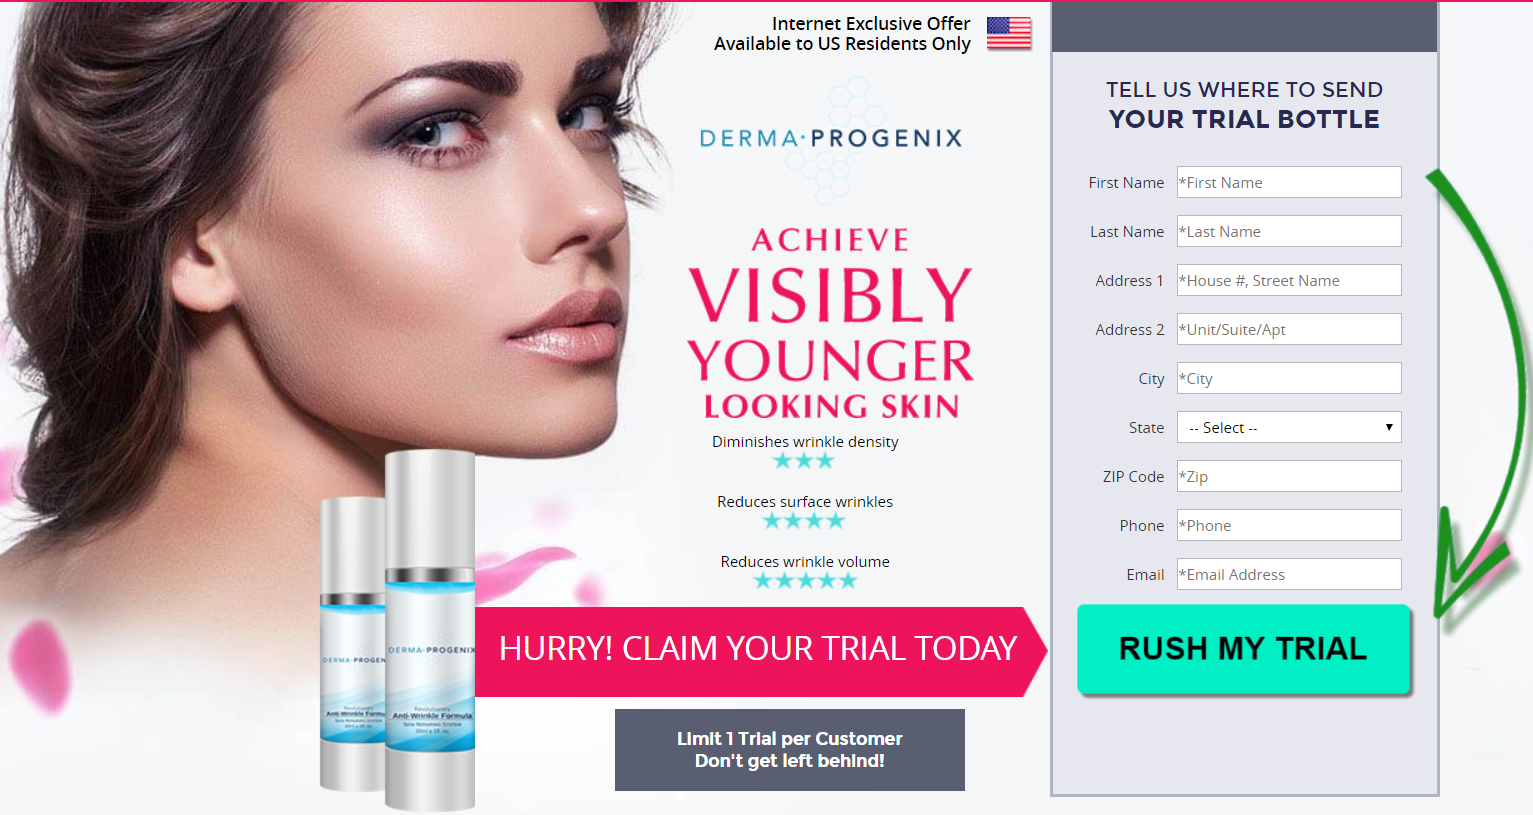 Derma Progenix Review-How Does it Work? CLICK TO KNOW